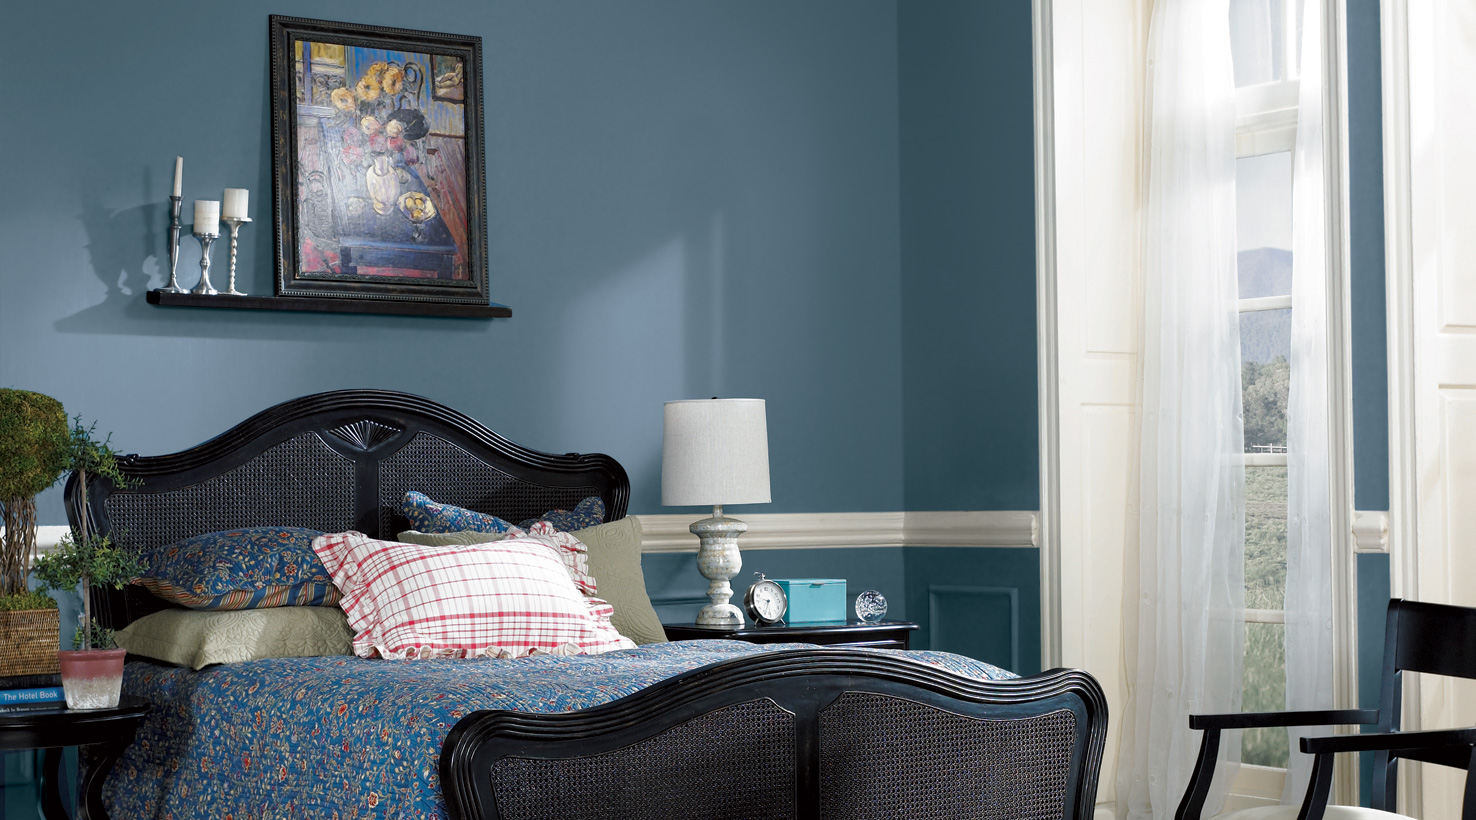 Bedroom Paint Ideas With Blue bedroom paint color ideas | inspiration gallery | sherwin-williams